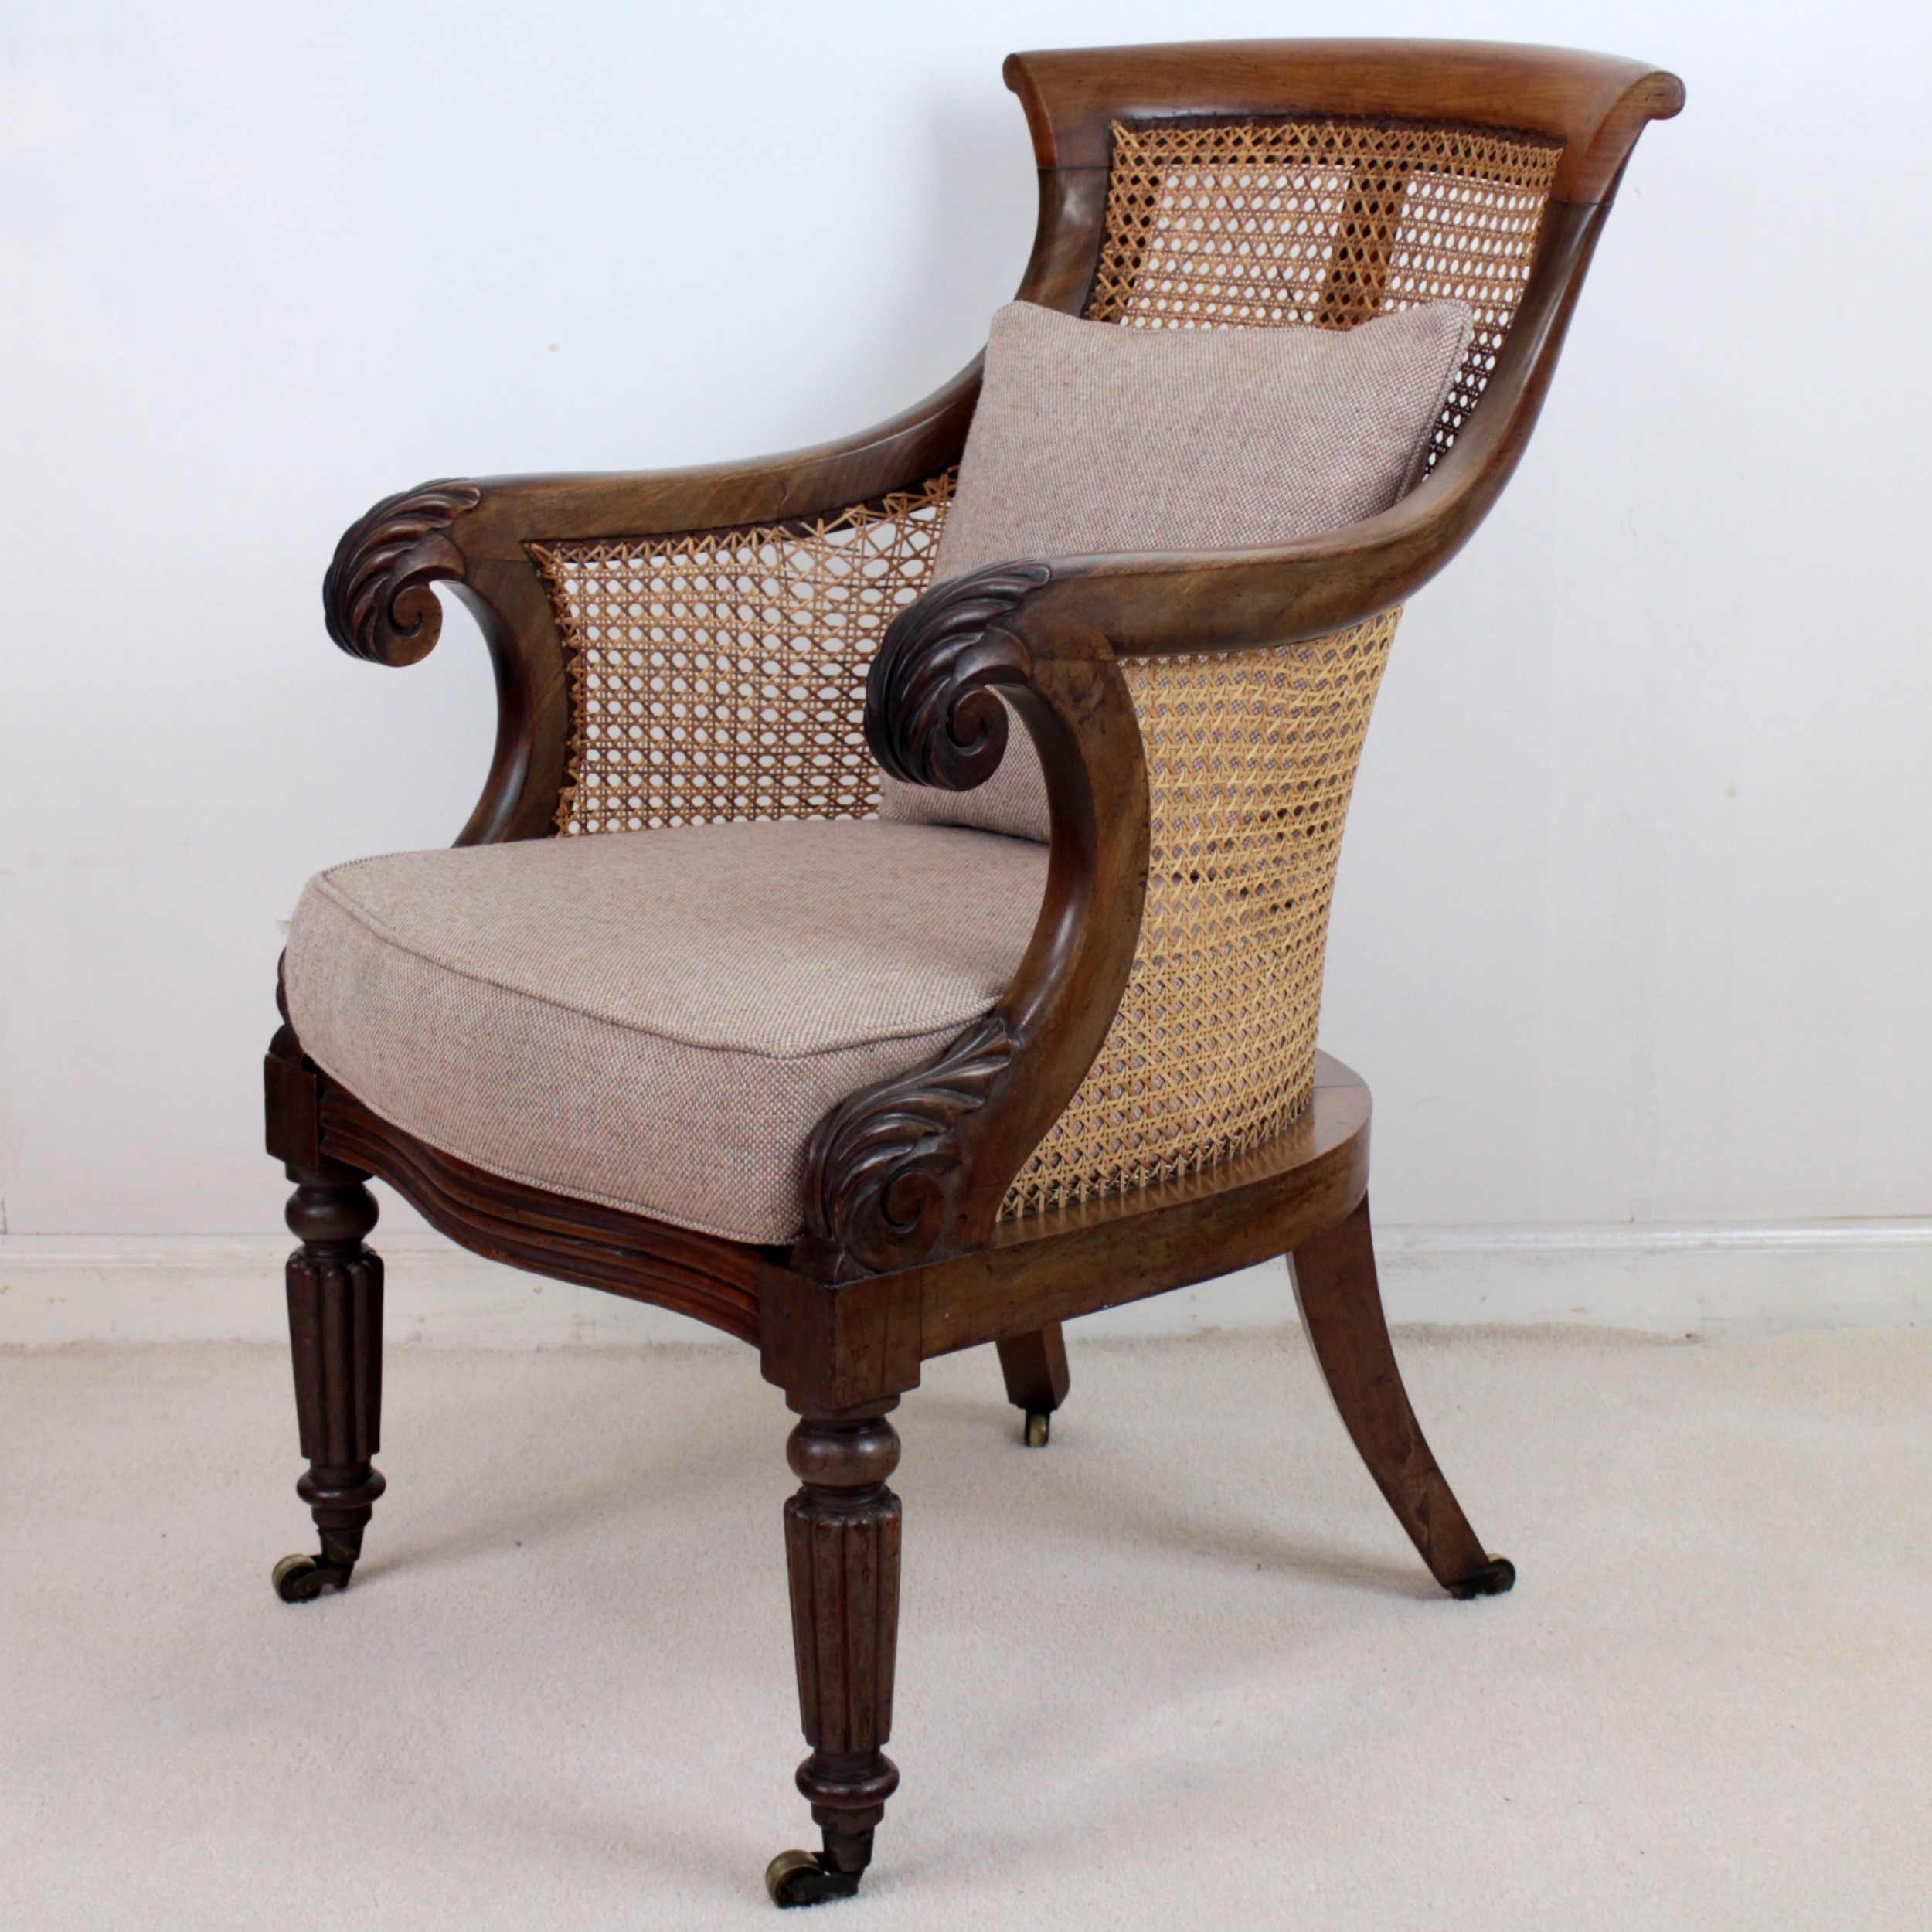 Regency Mahogany Cane Filled English Library Or Bergre Chair